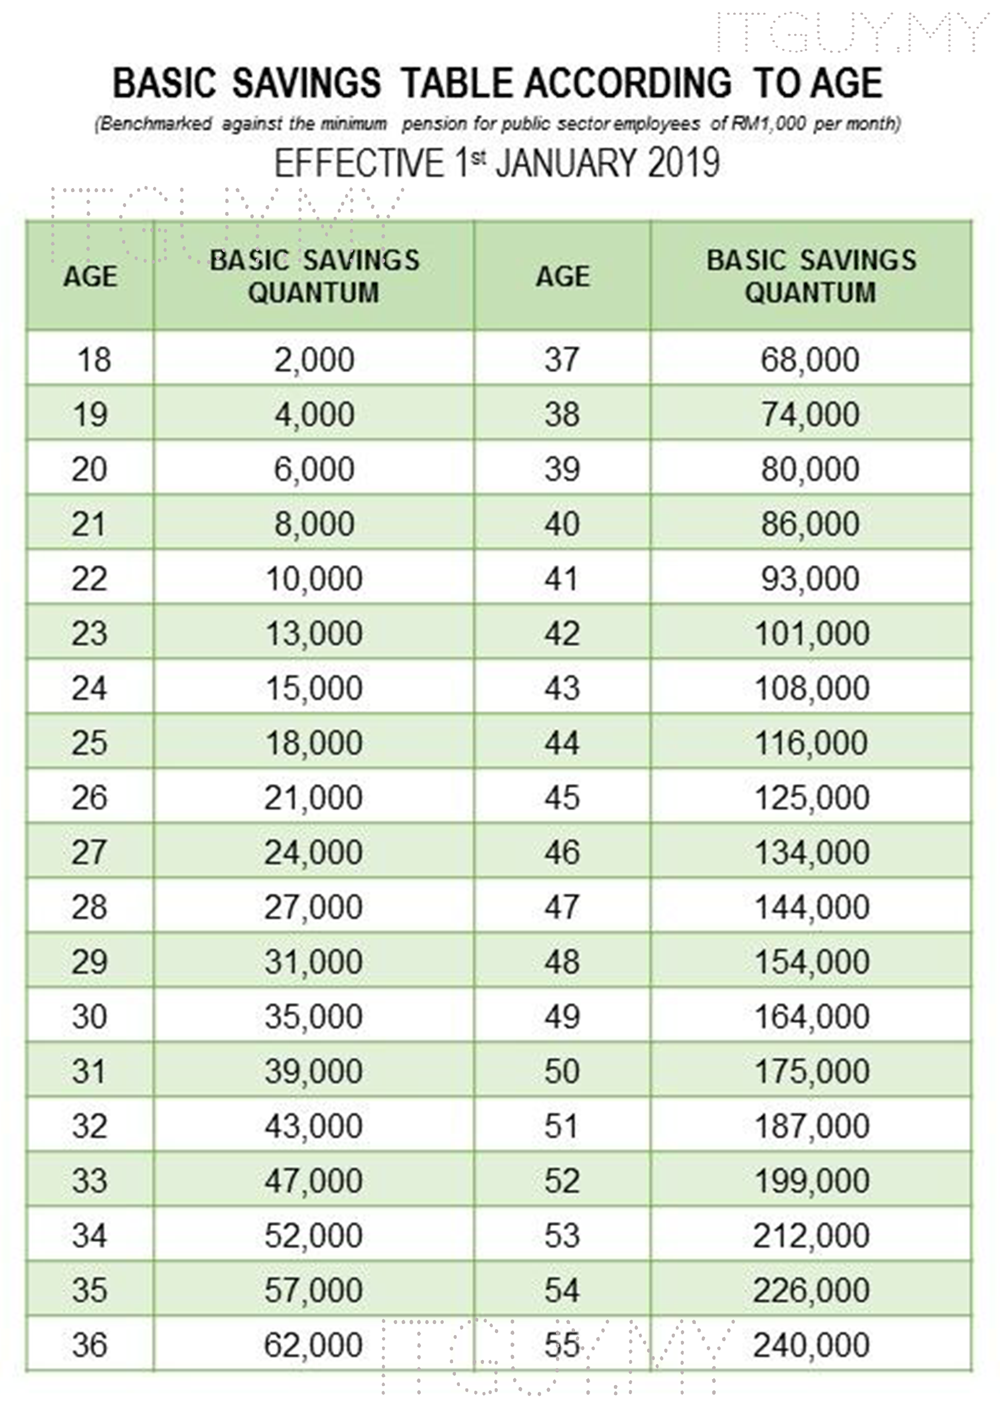 EPF KWSP BASIC SAVINGS TABLE